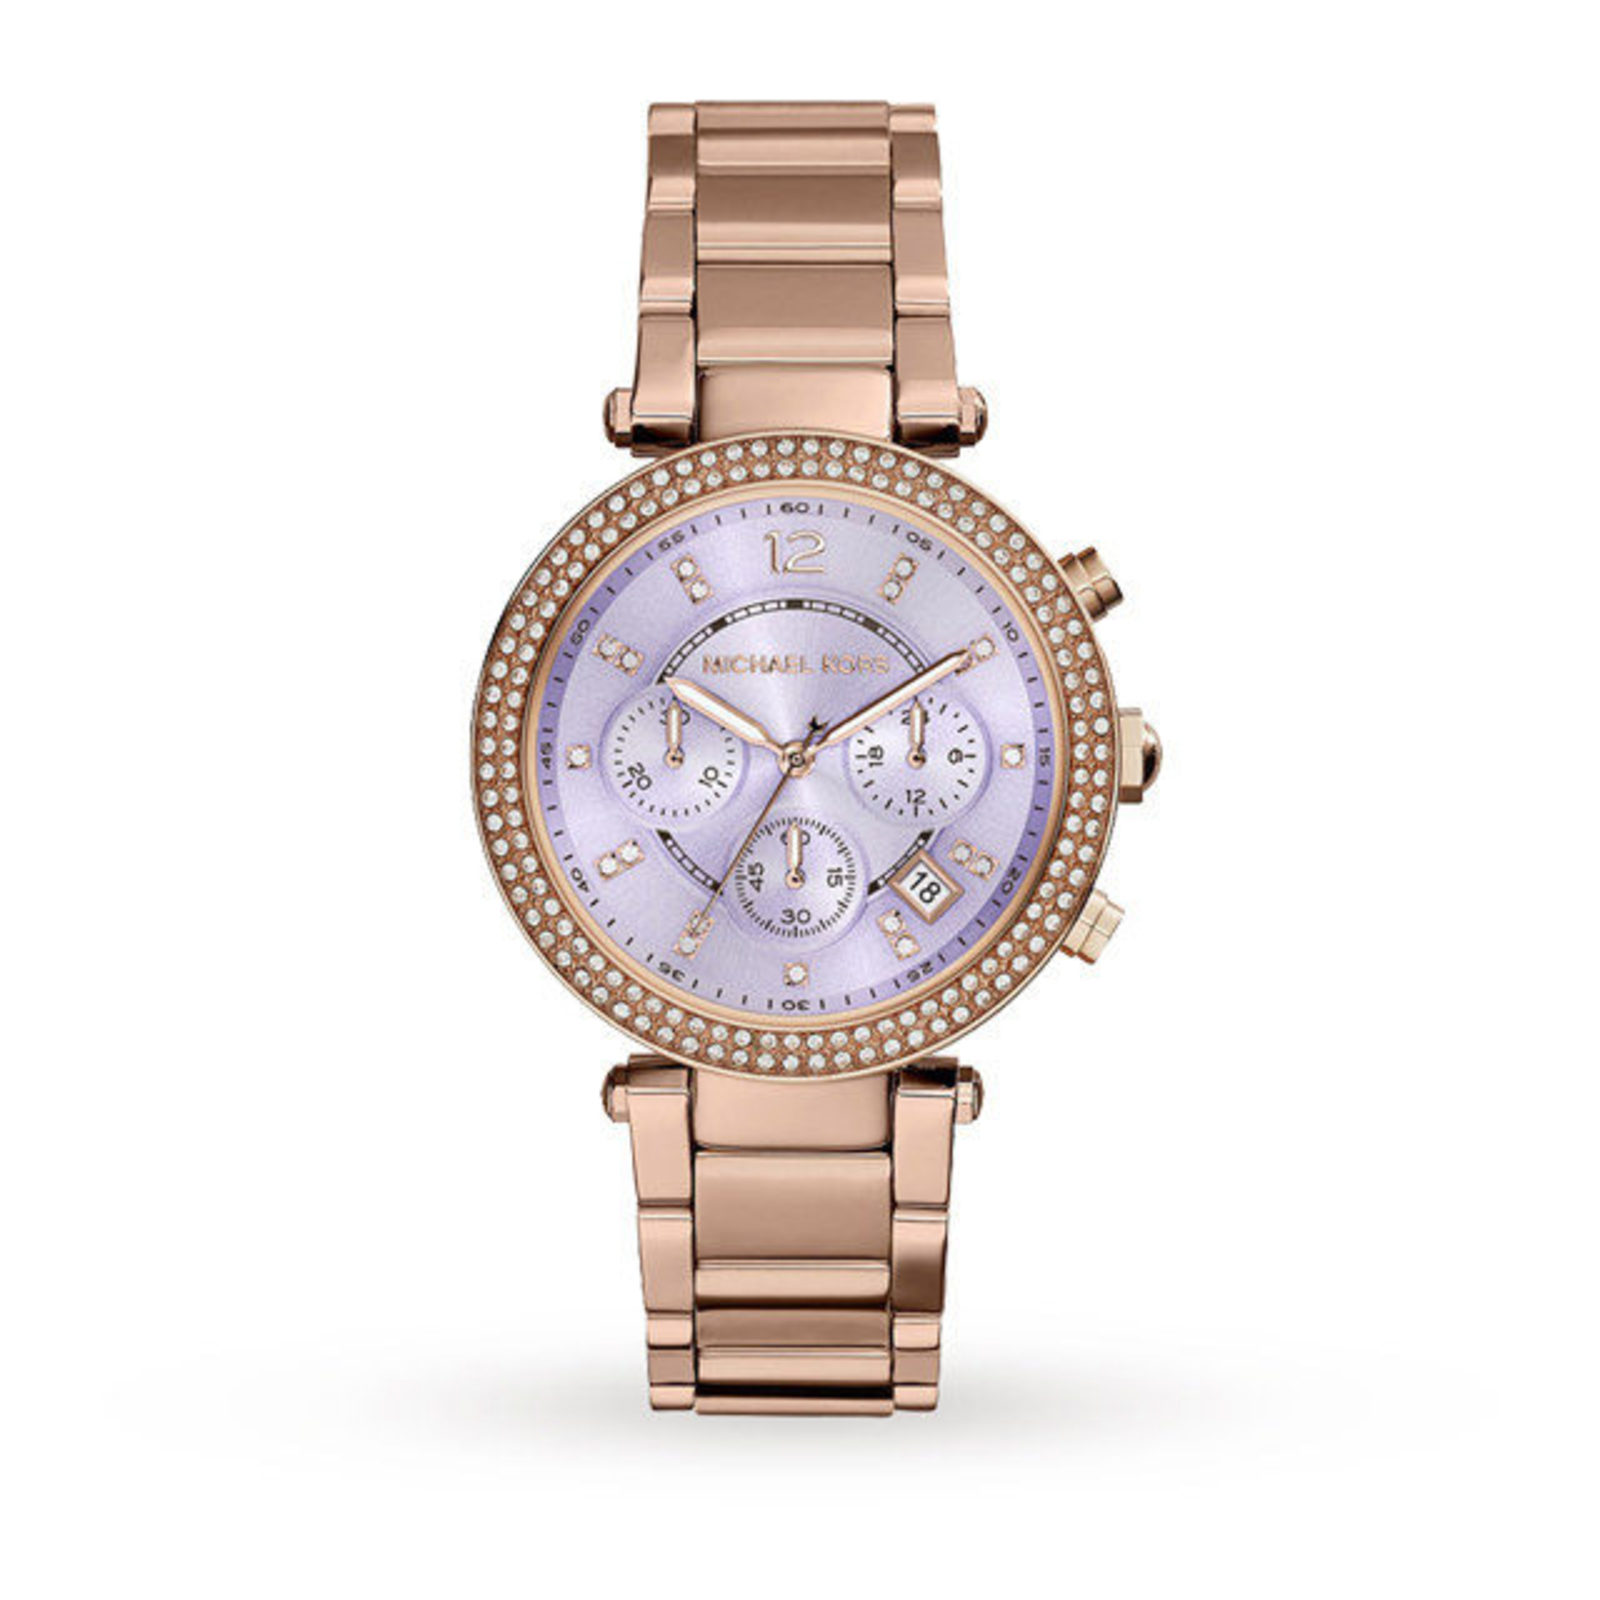 Michael Kors MK6169 Parker Jet Set Watch